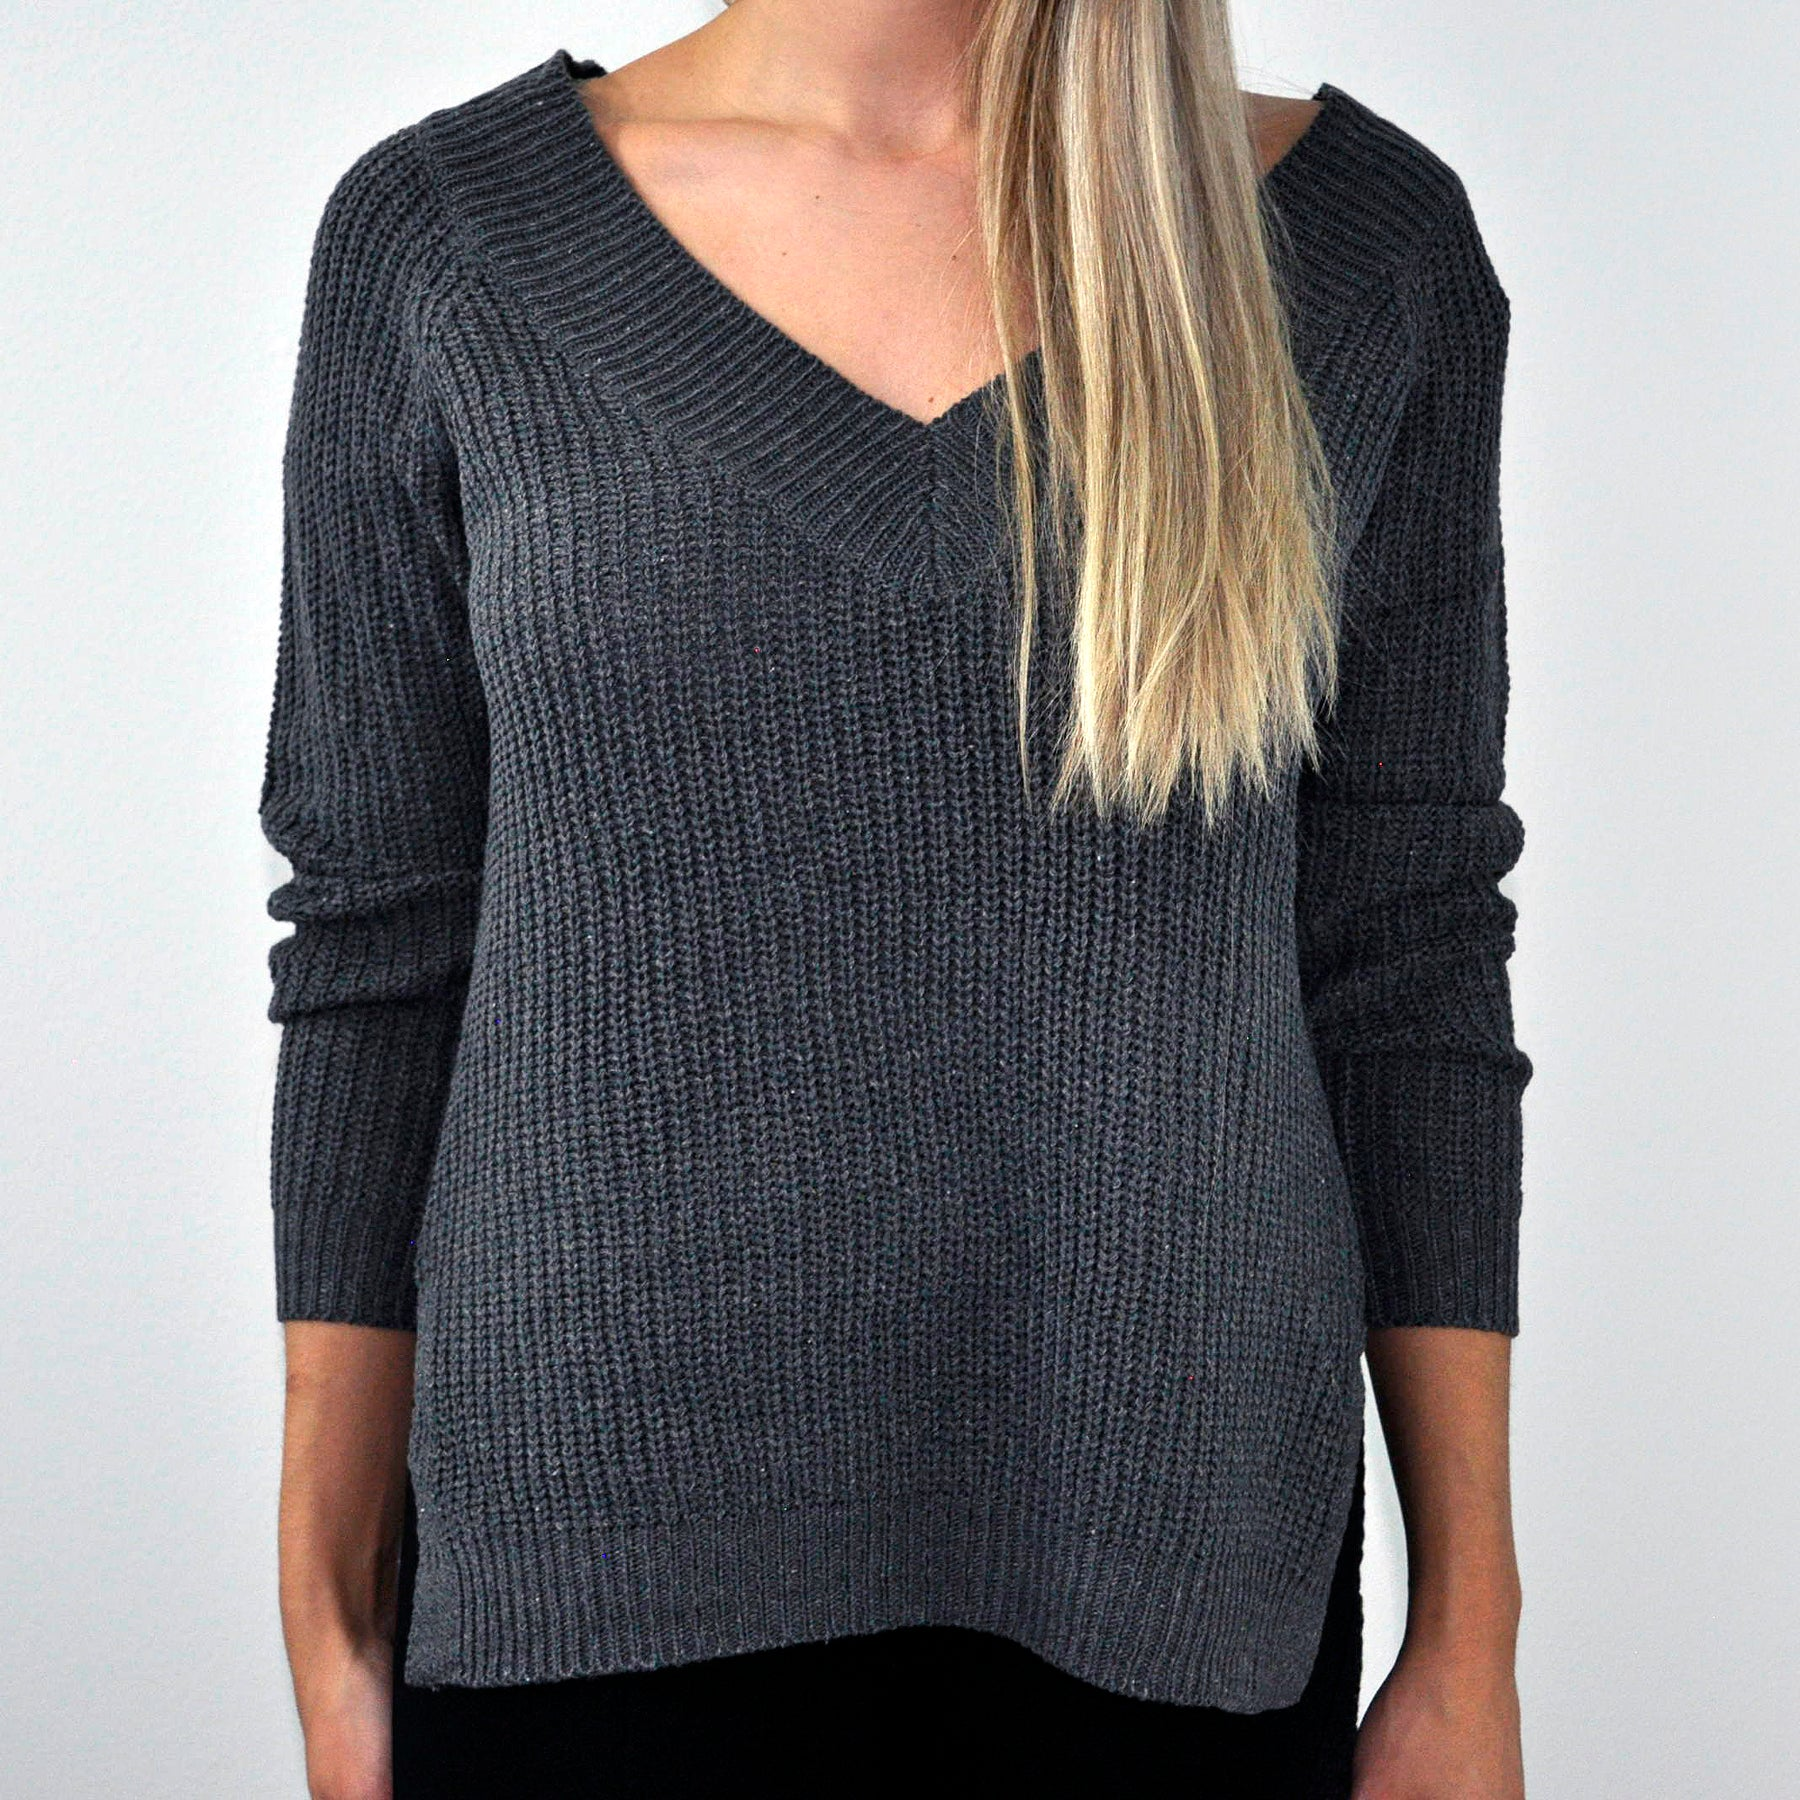 Knit V-Neck Sweater - SOИDER BOUTIQUE